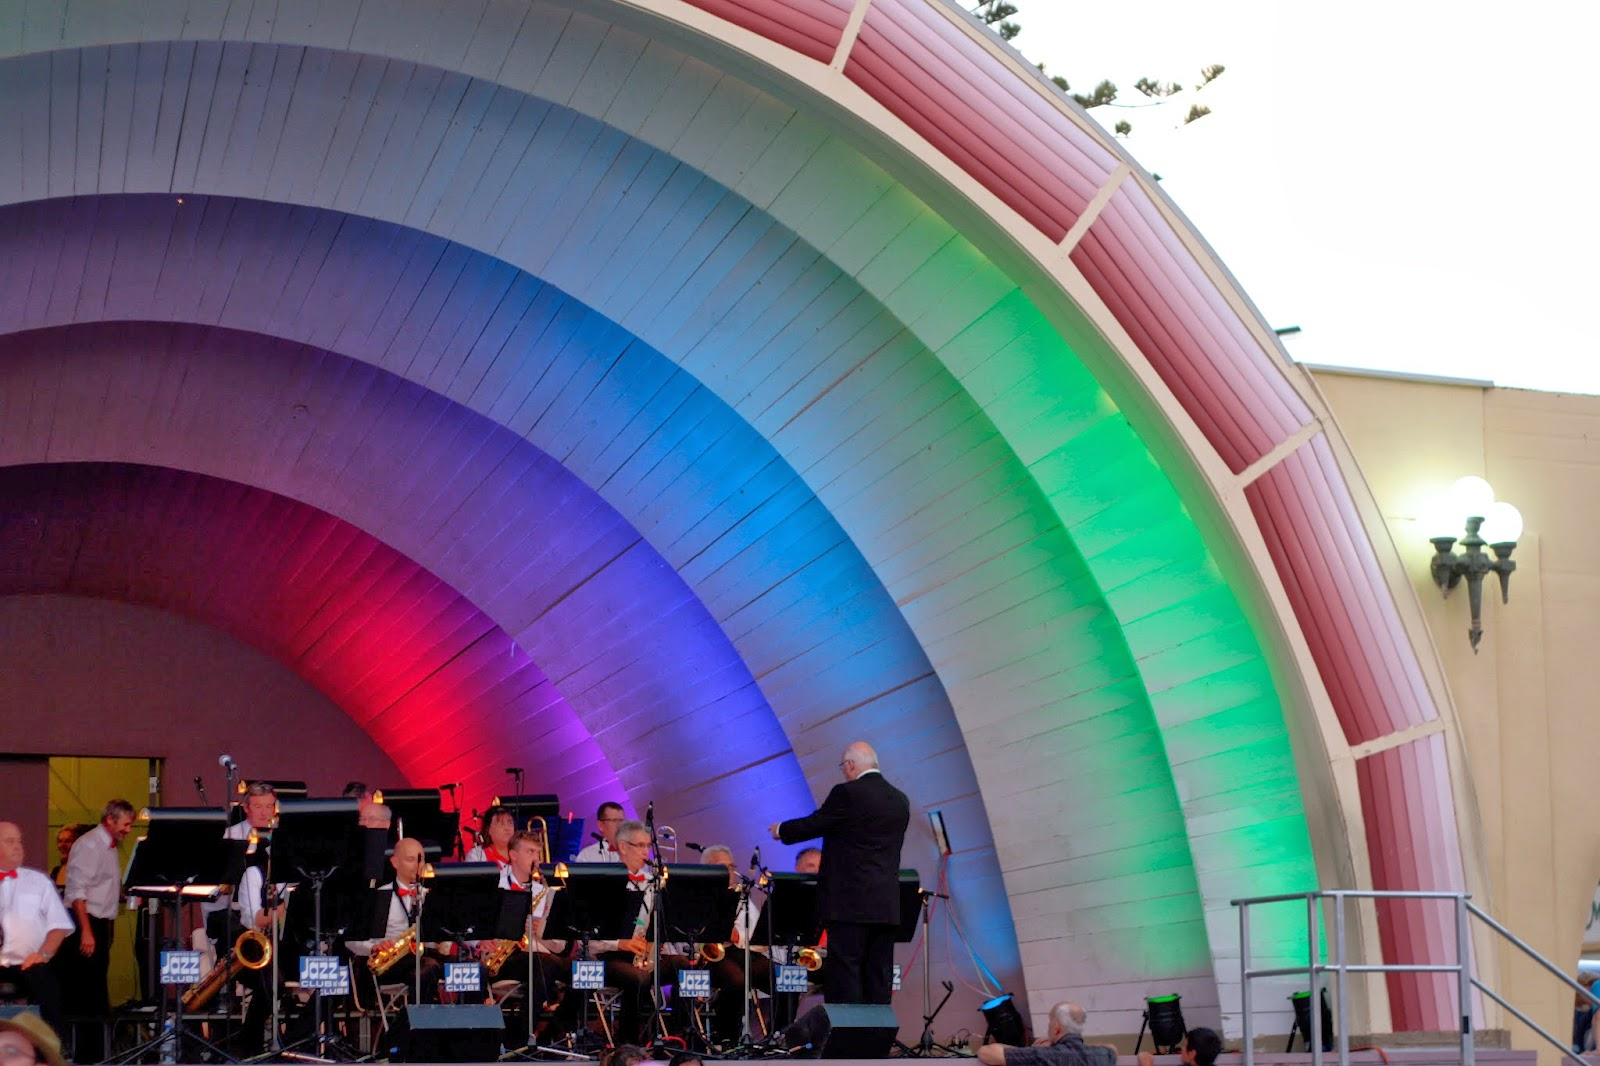 A band plays in the Napier Soundshell. It's lit up like a rainbow.